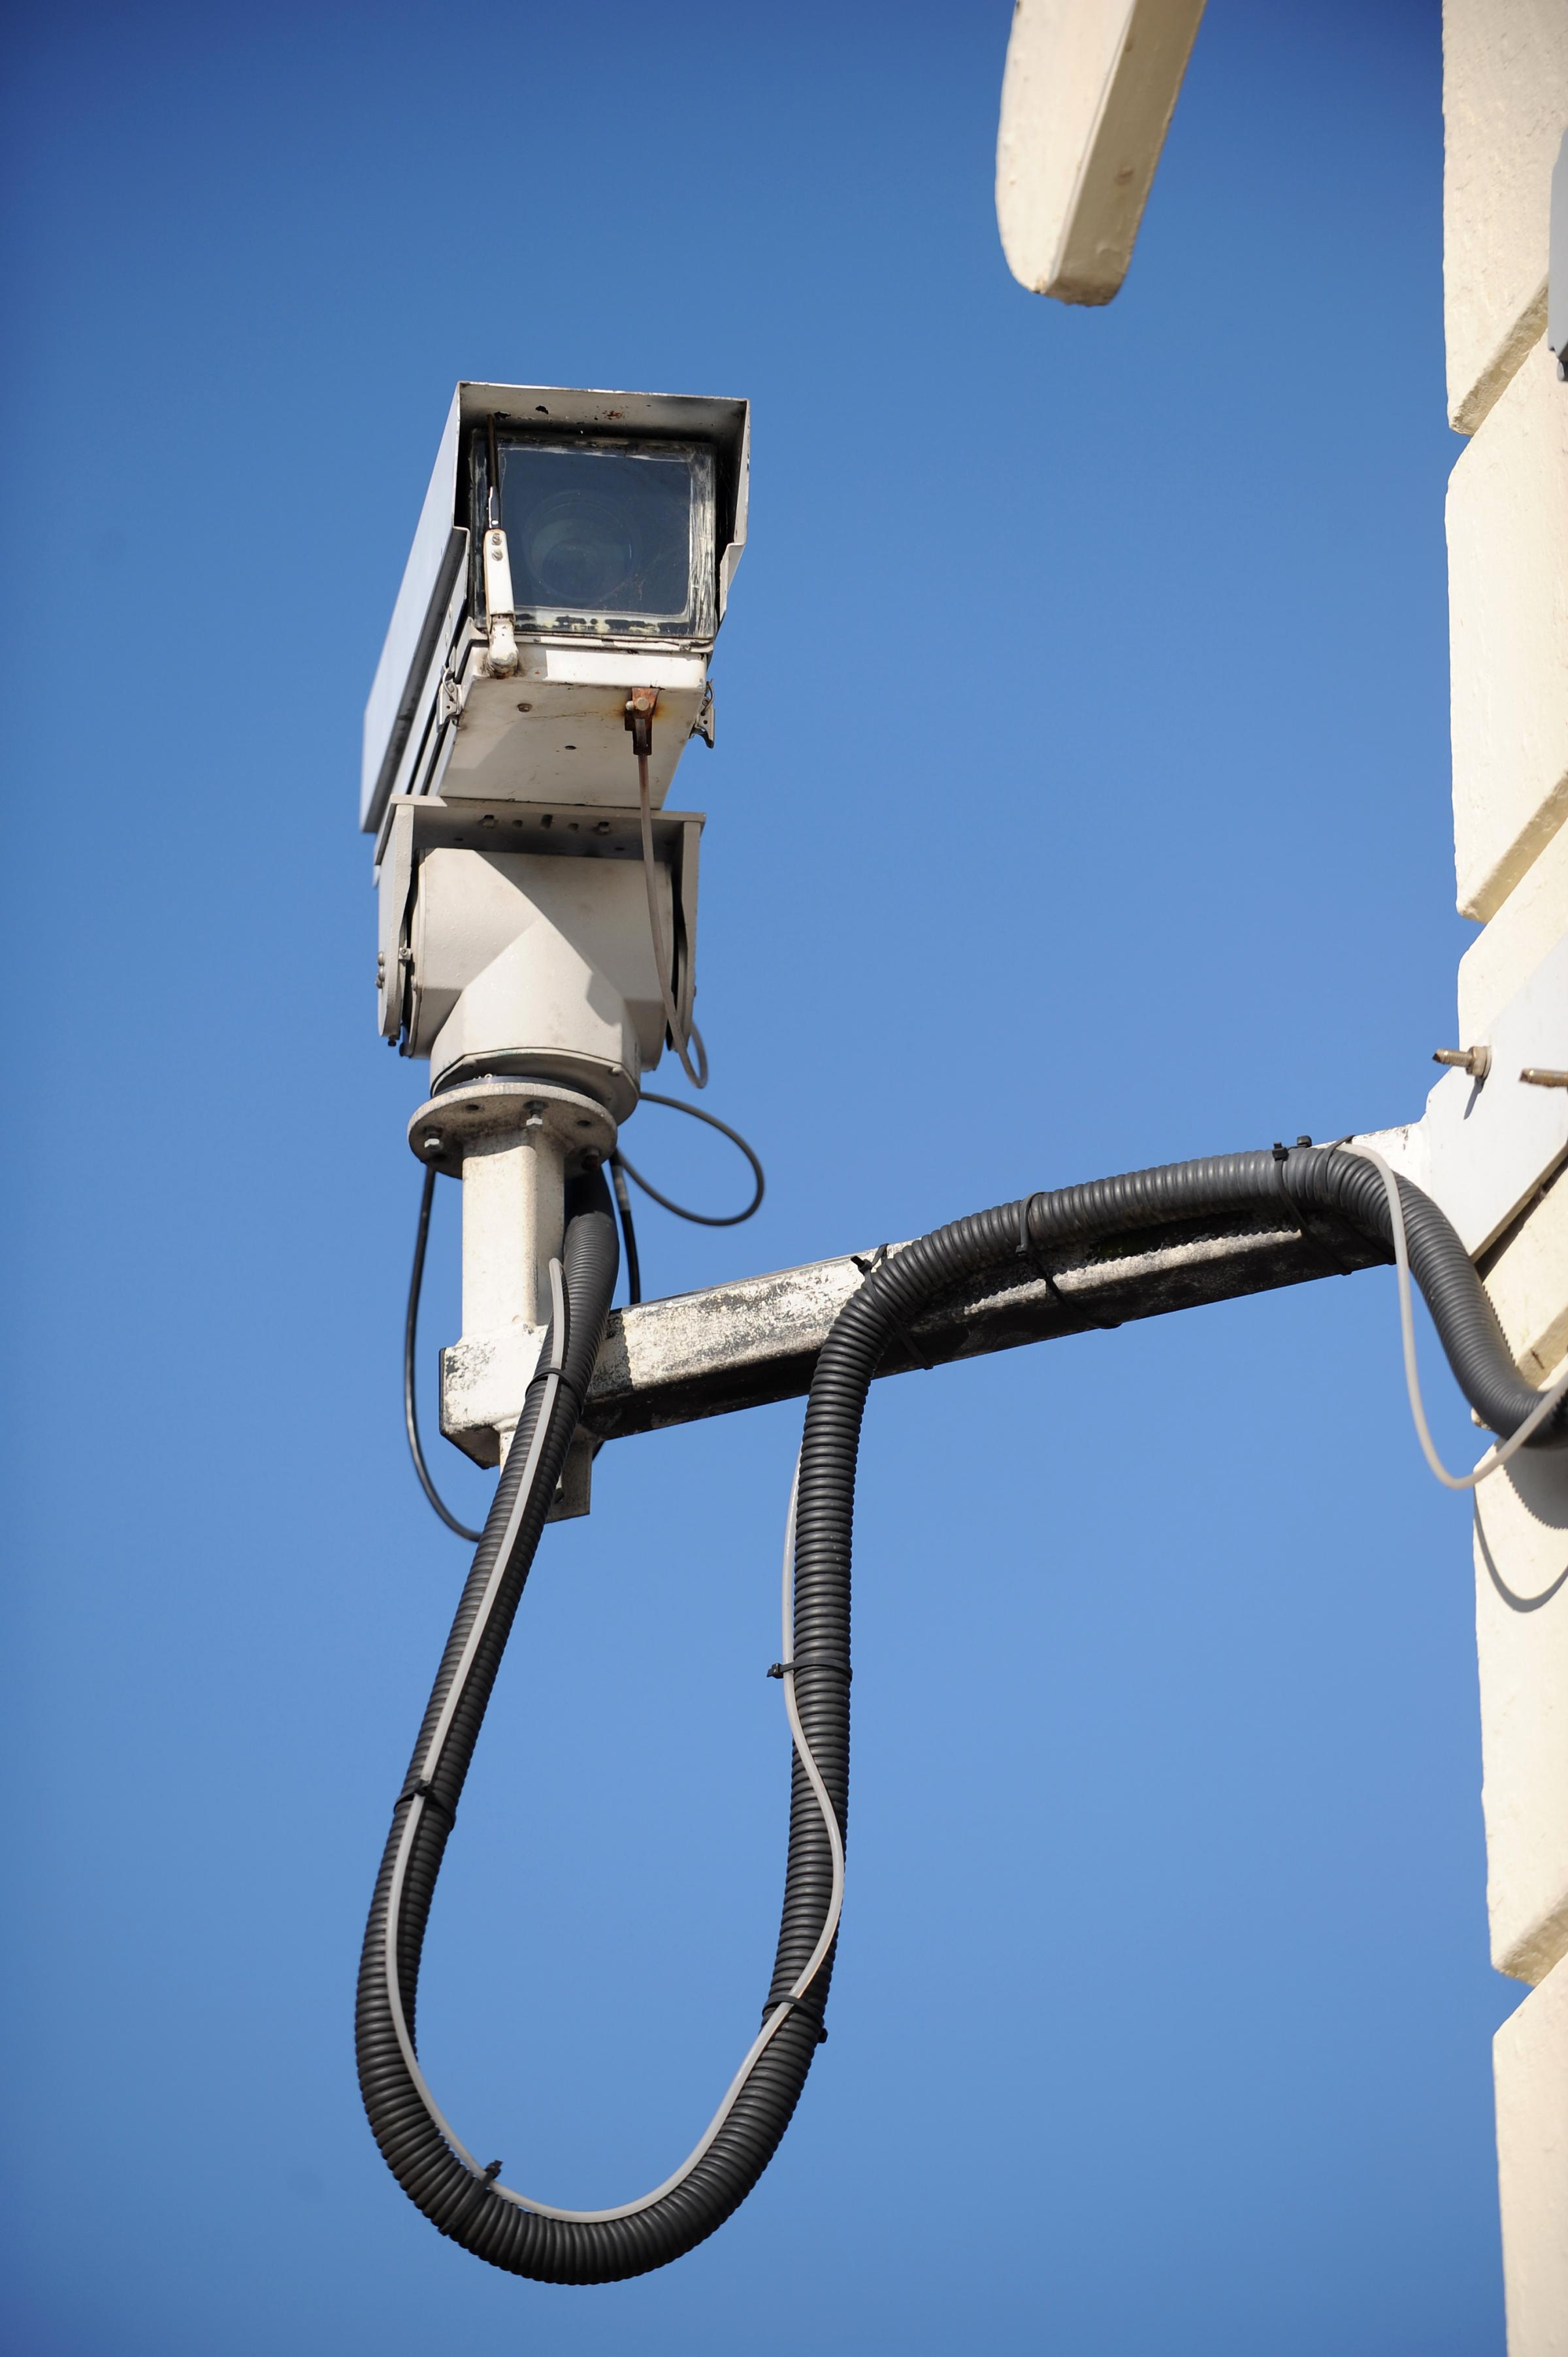 Westhoughton lab's bid to keep CCTV camera to be decided today